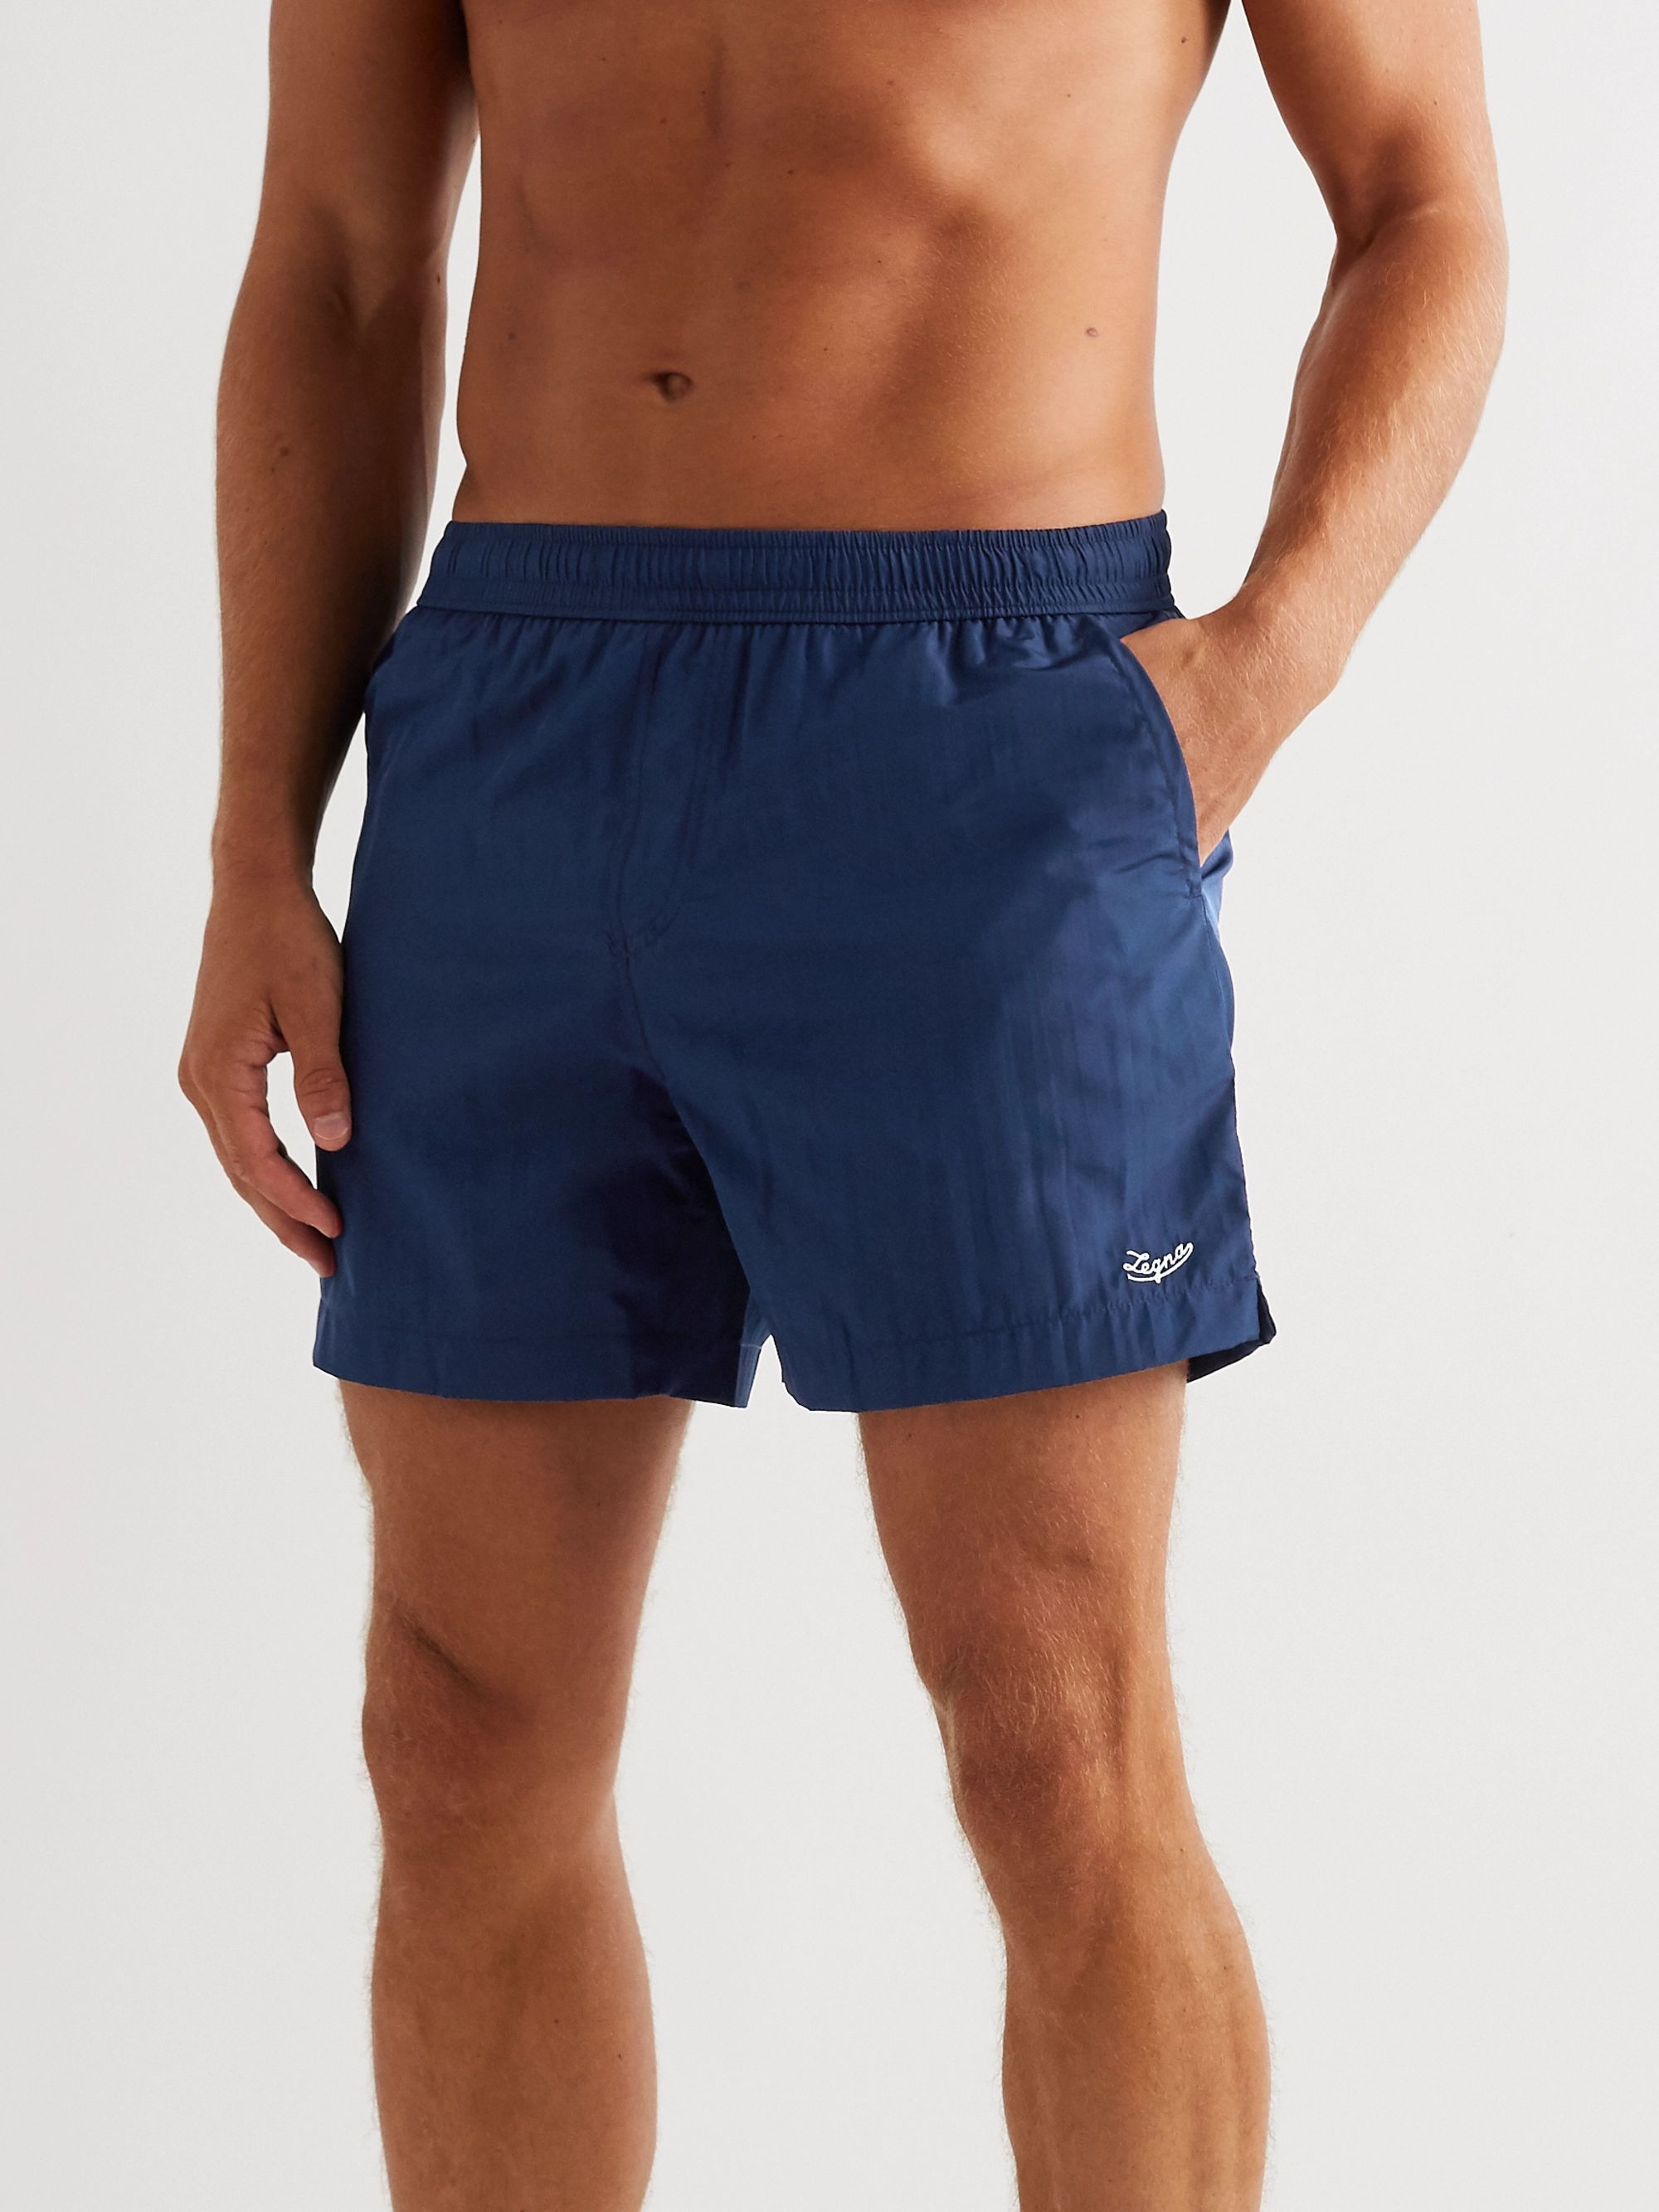 Ermenegildo Zegna Slim-Fit Mid-Length Swim Shorts